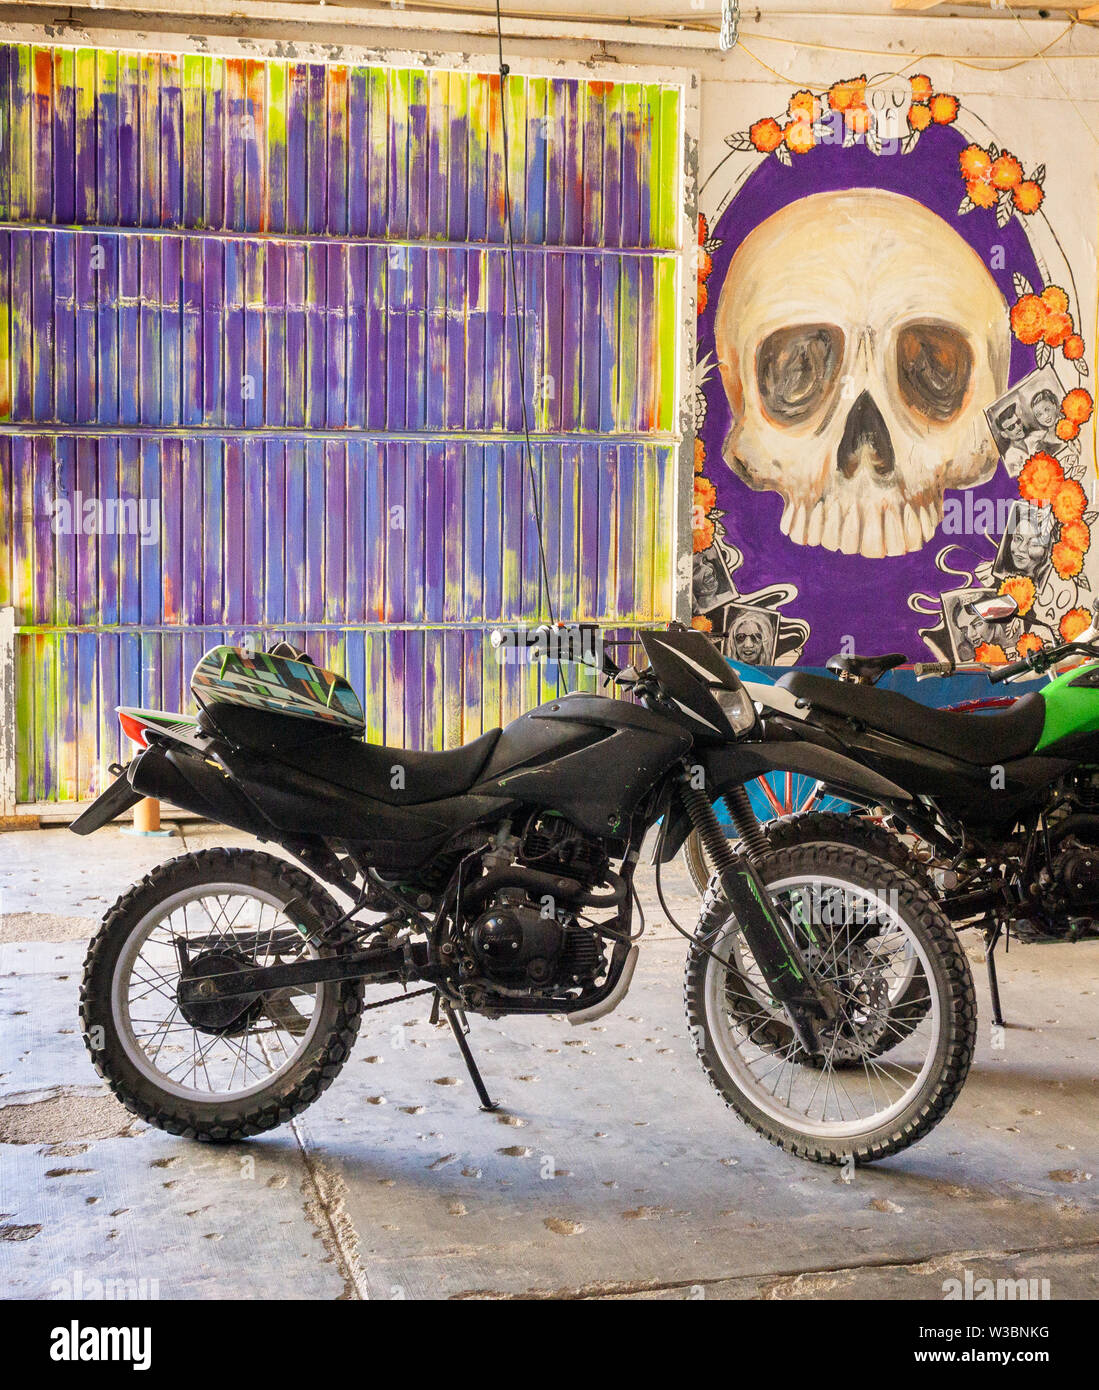 garage with a motorbike on a multicolored wall and paint of a skull - Stock Image